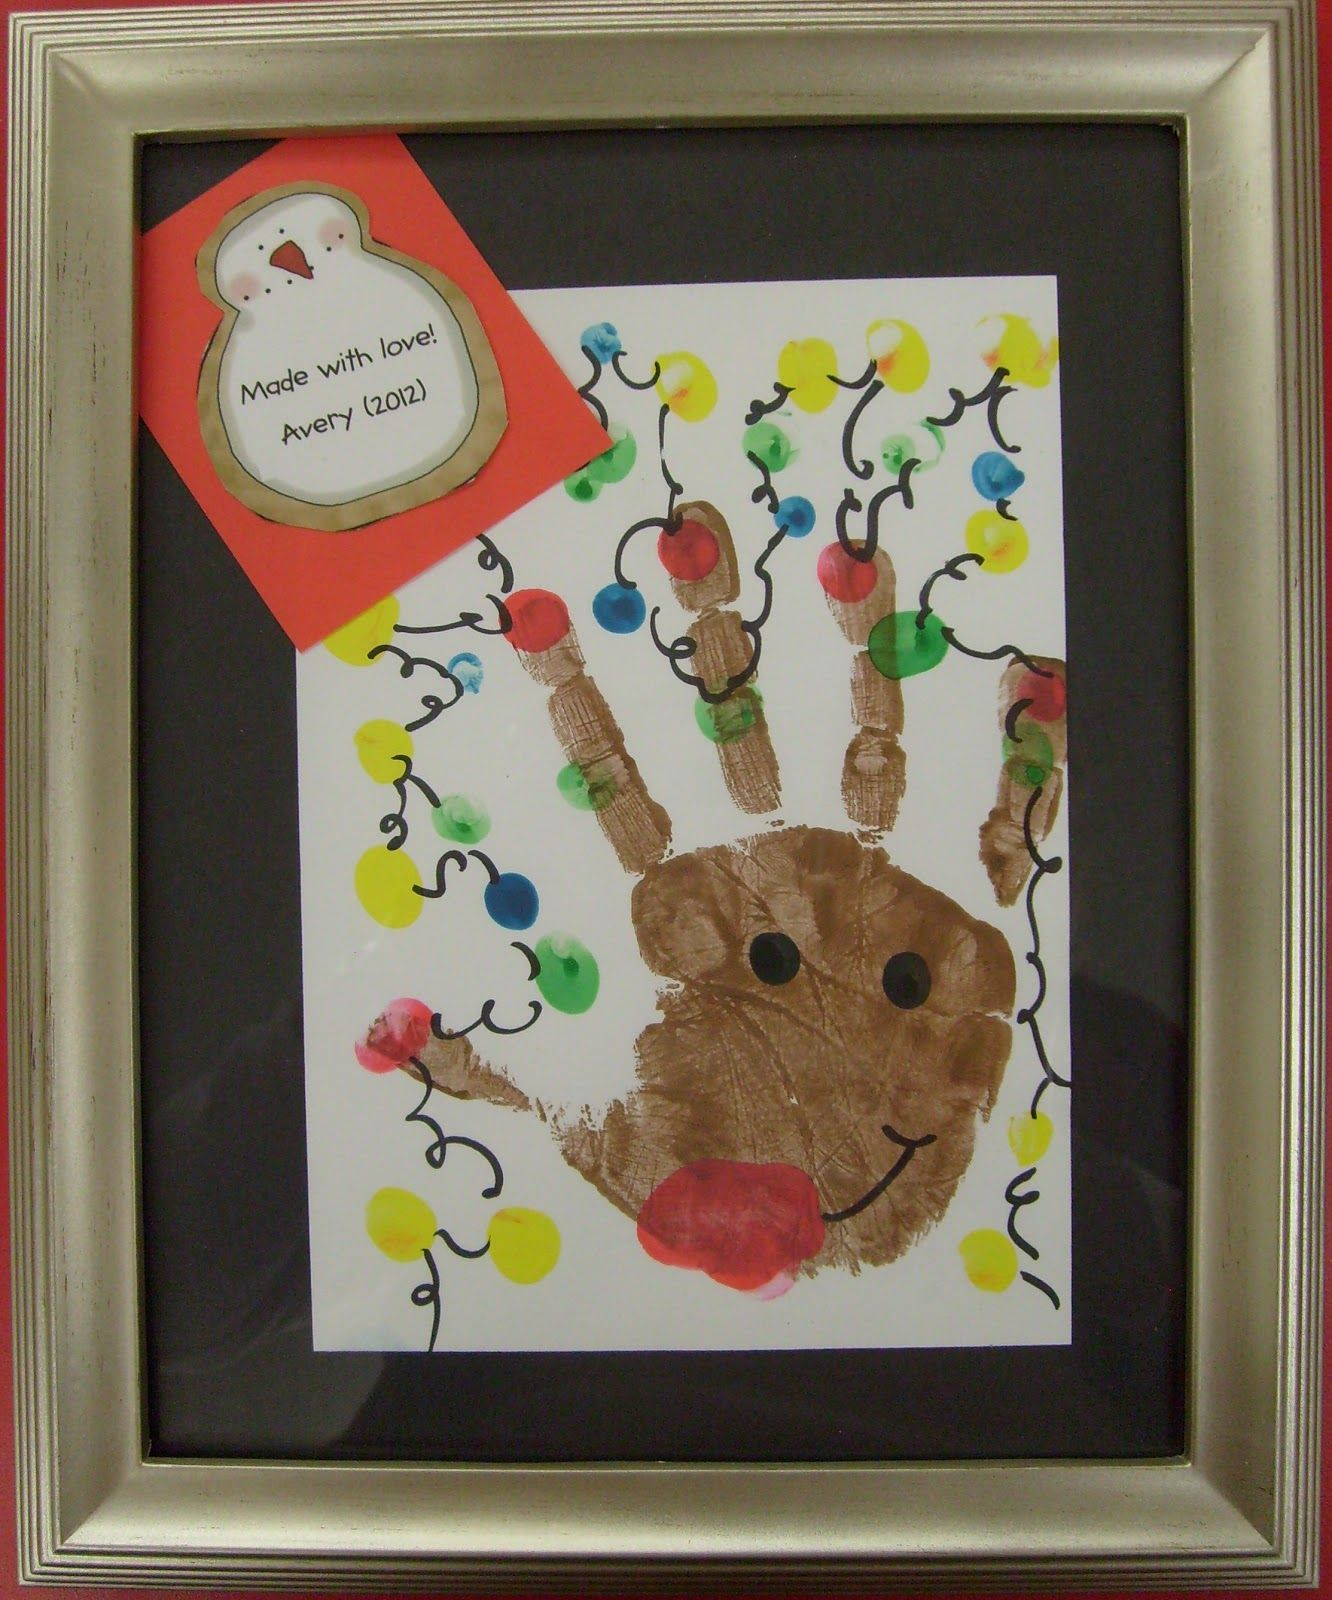 47+ Christmas craft ideas for parent gifts info